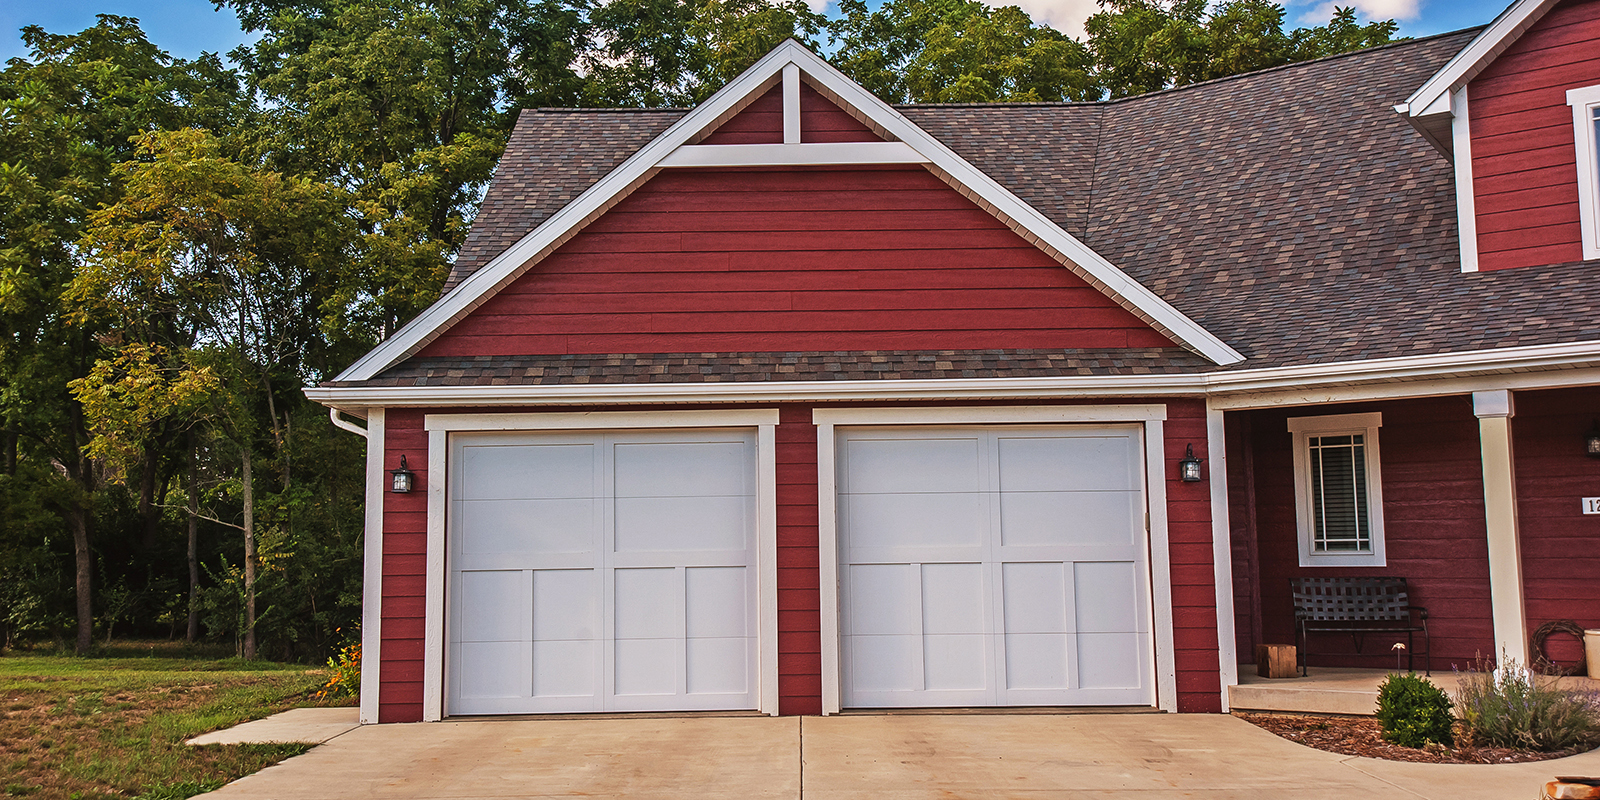 800 #386794 Residential Garage Doors picture/photo Chi Residential Garage Doors 36291600